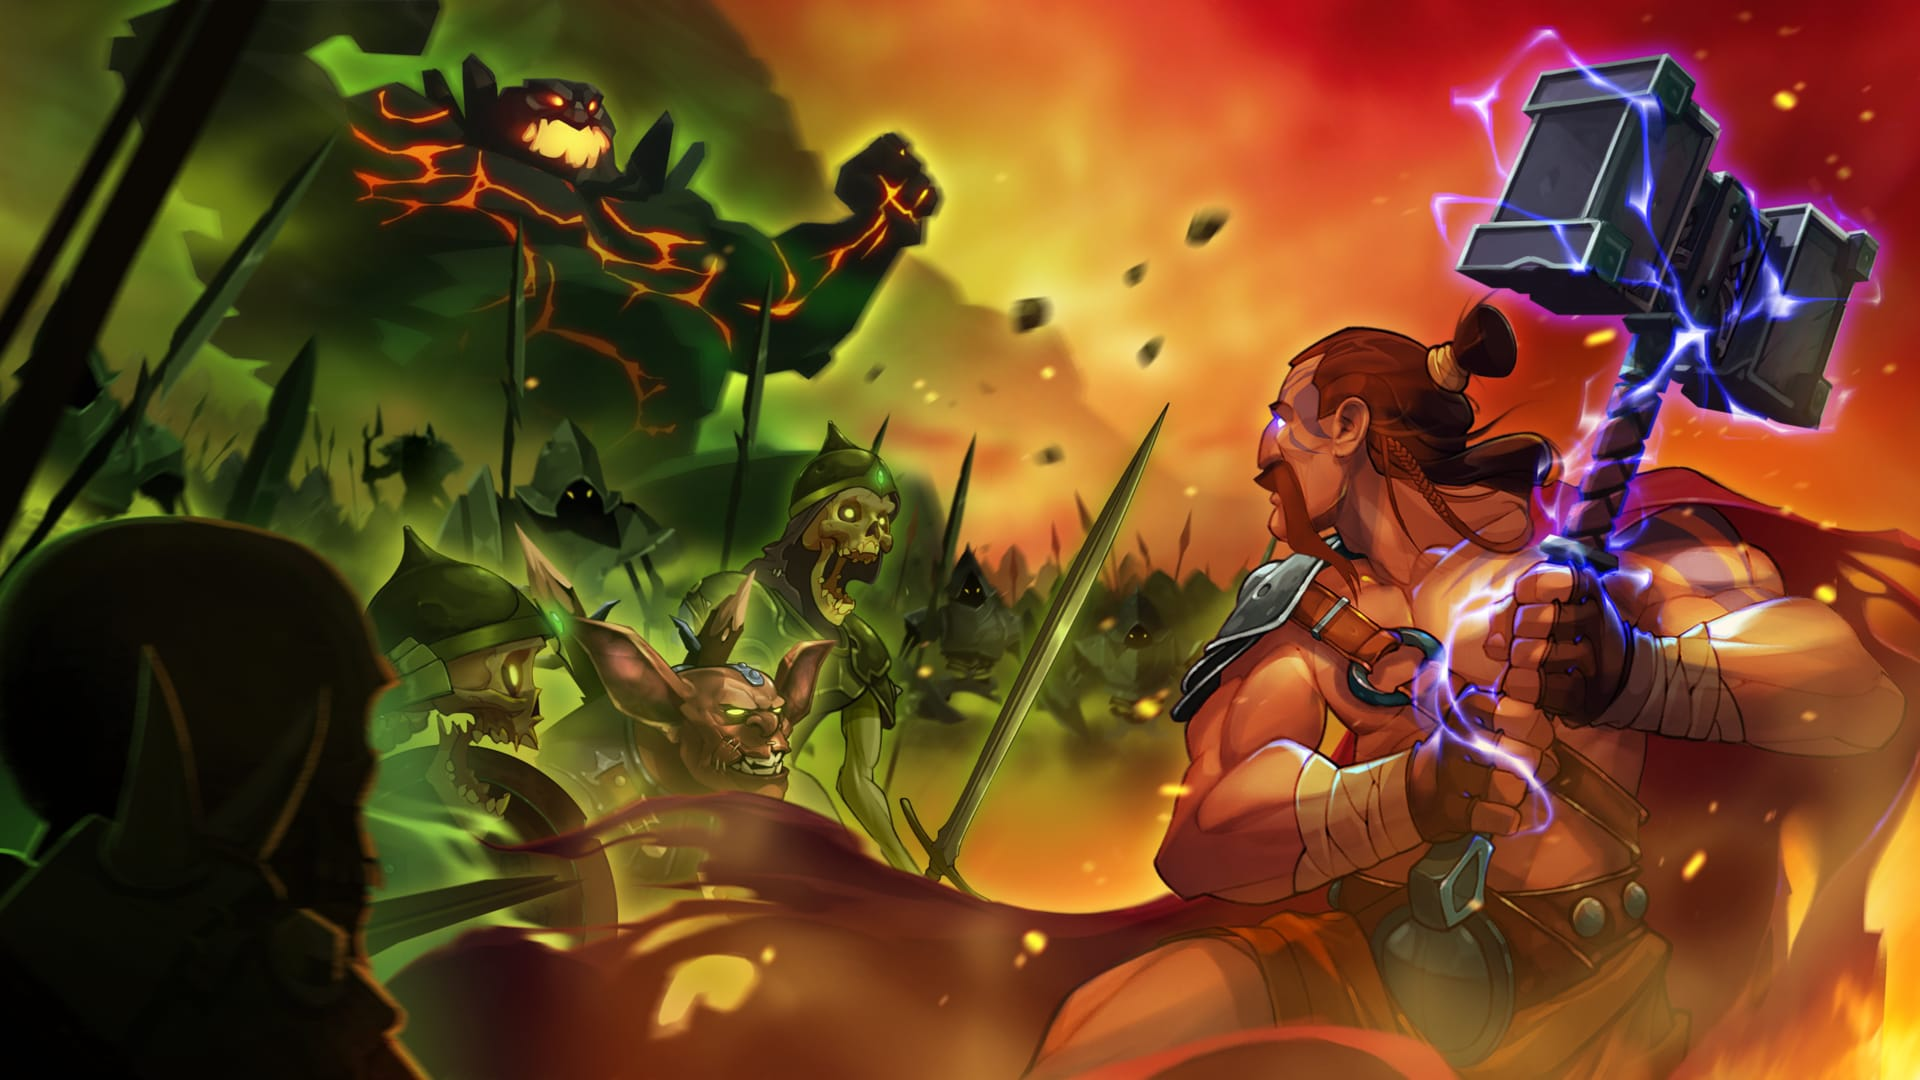 Wallpaper Gaming Girl Pagan Online Is The New Action Rpg From World Of Tanks